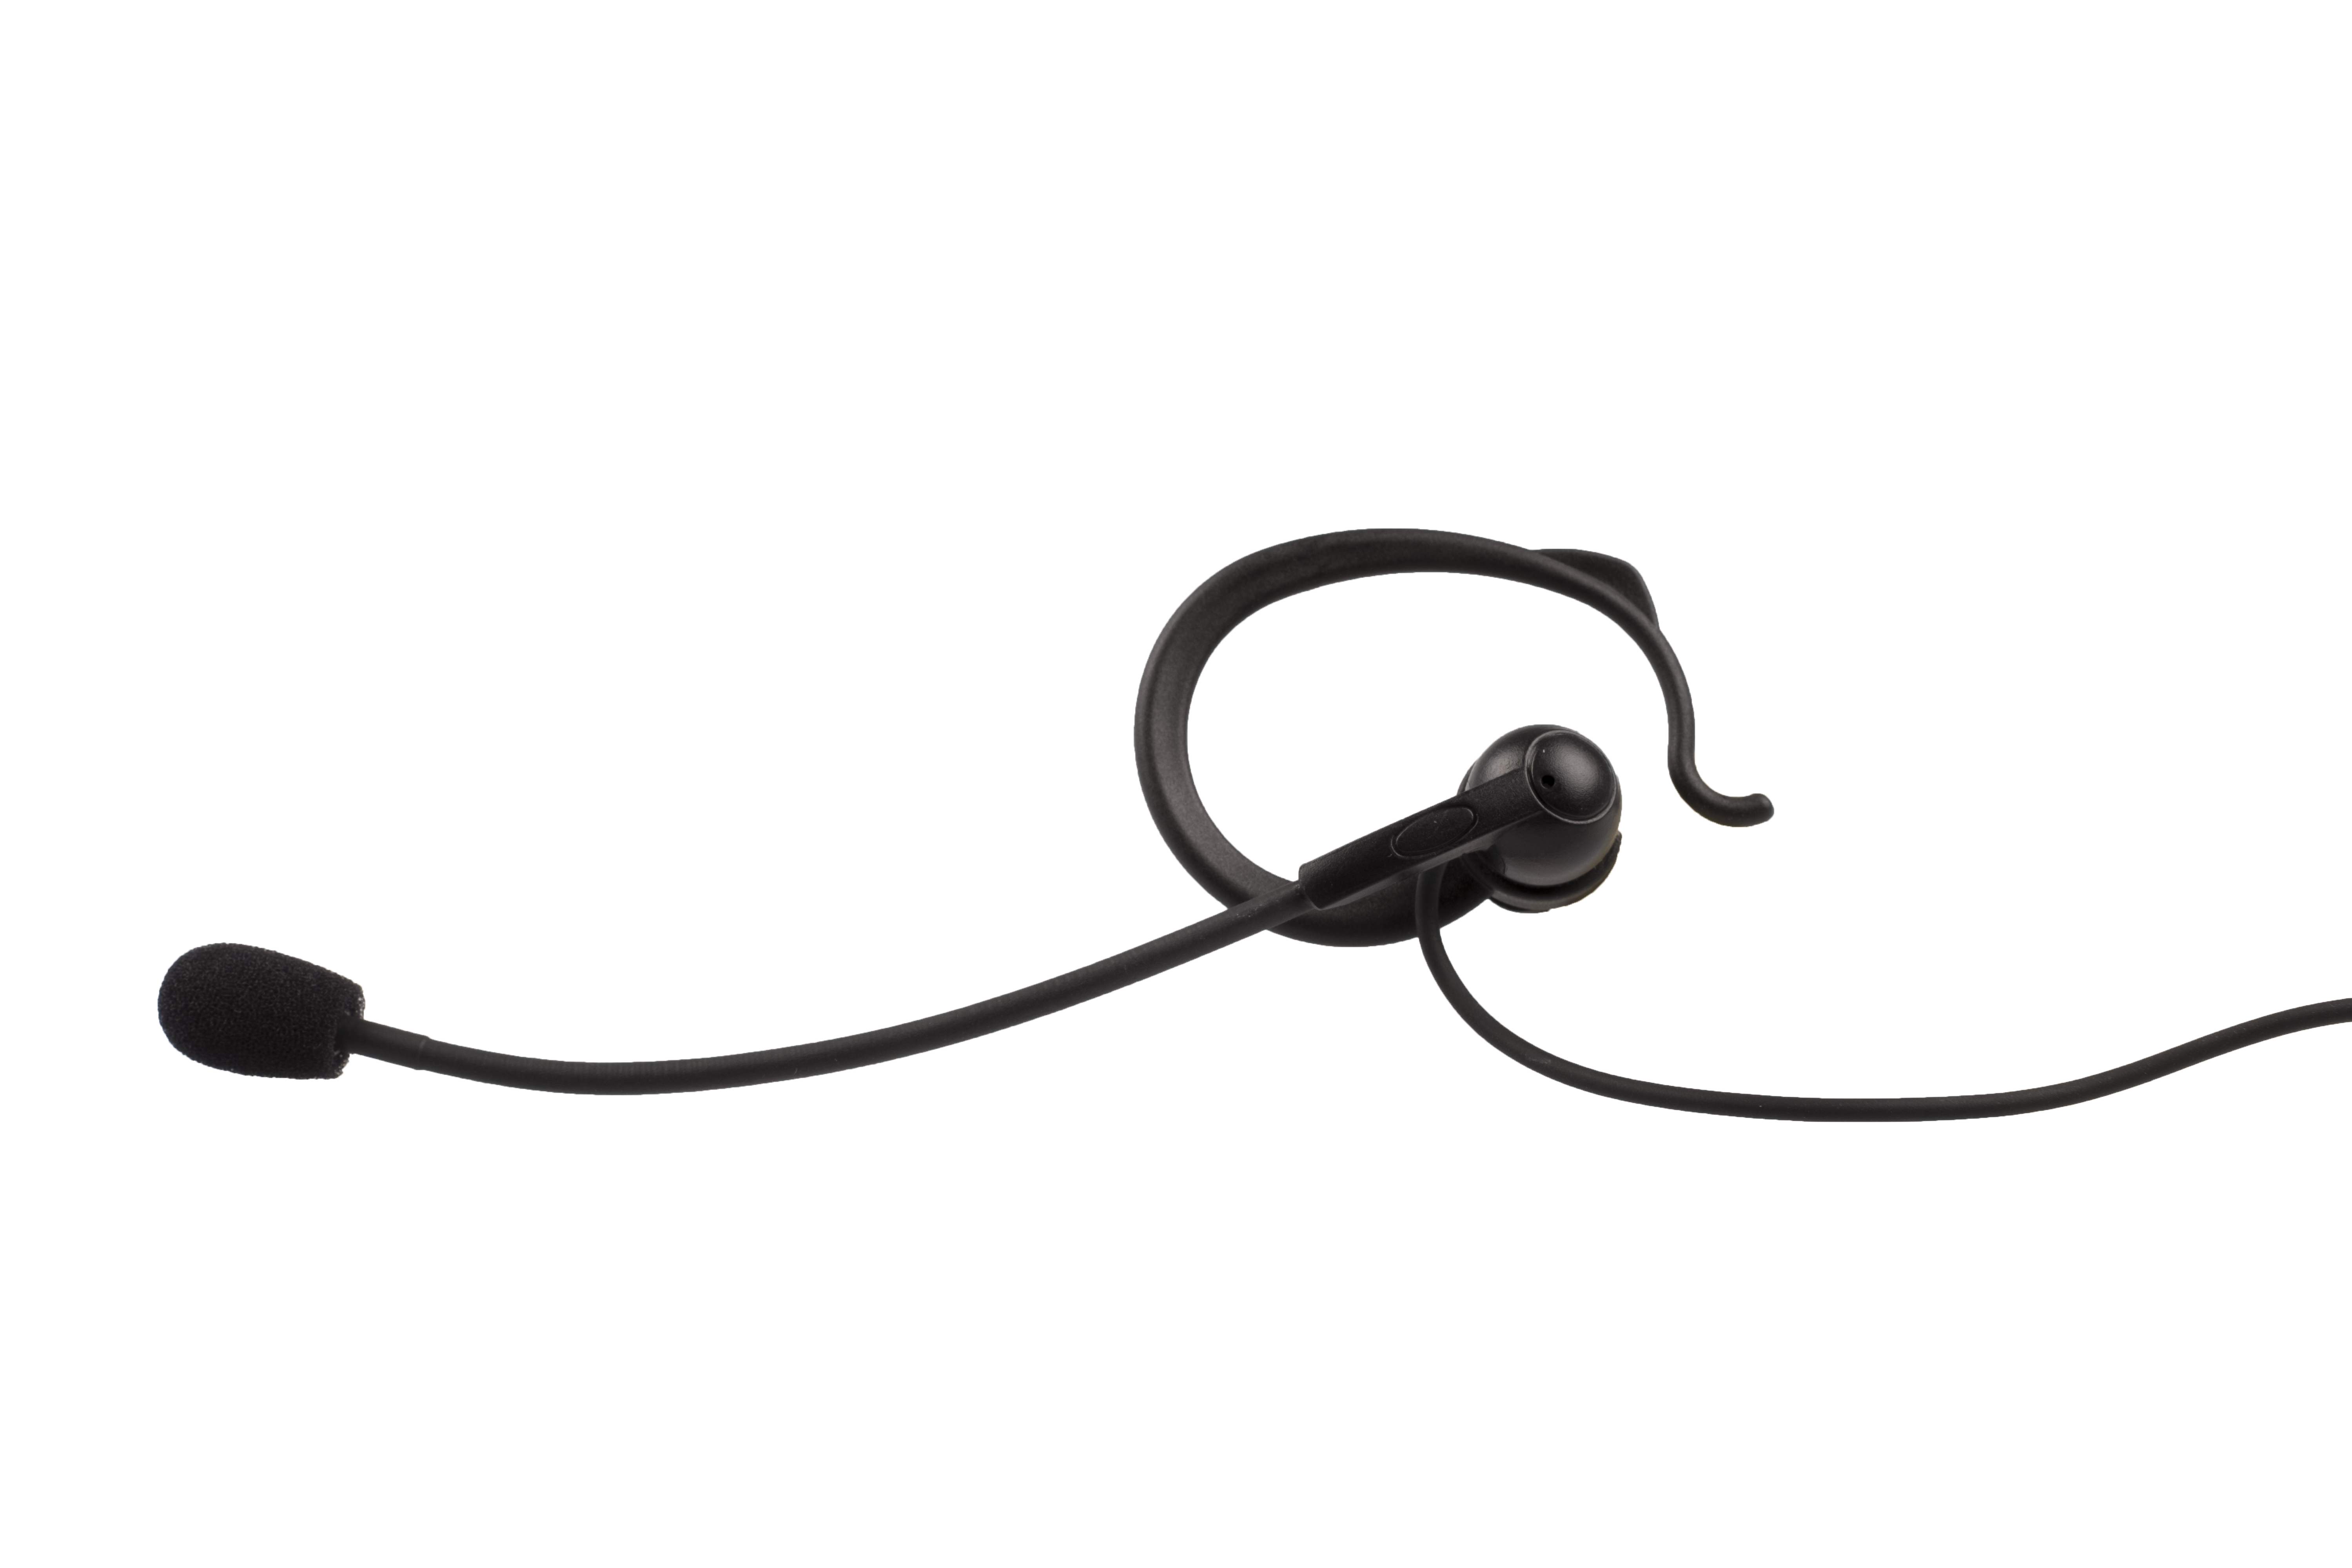 axiwi-HE-075-sport-headset-noise-cancelling